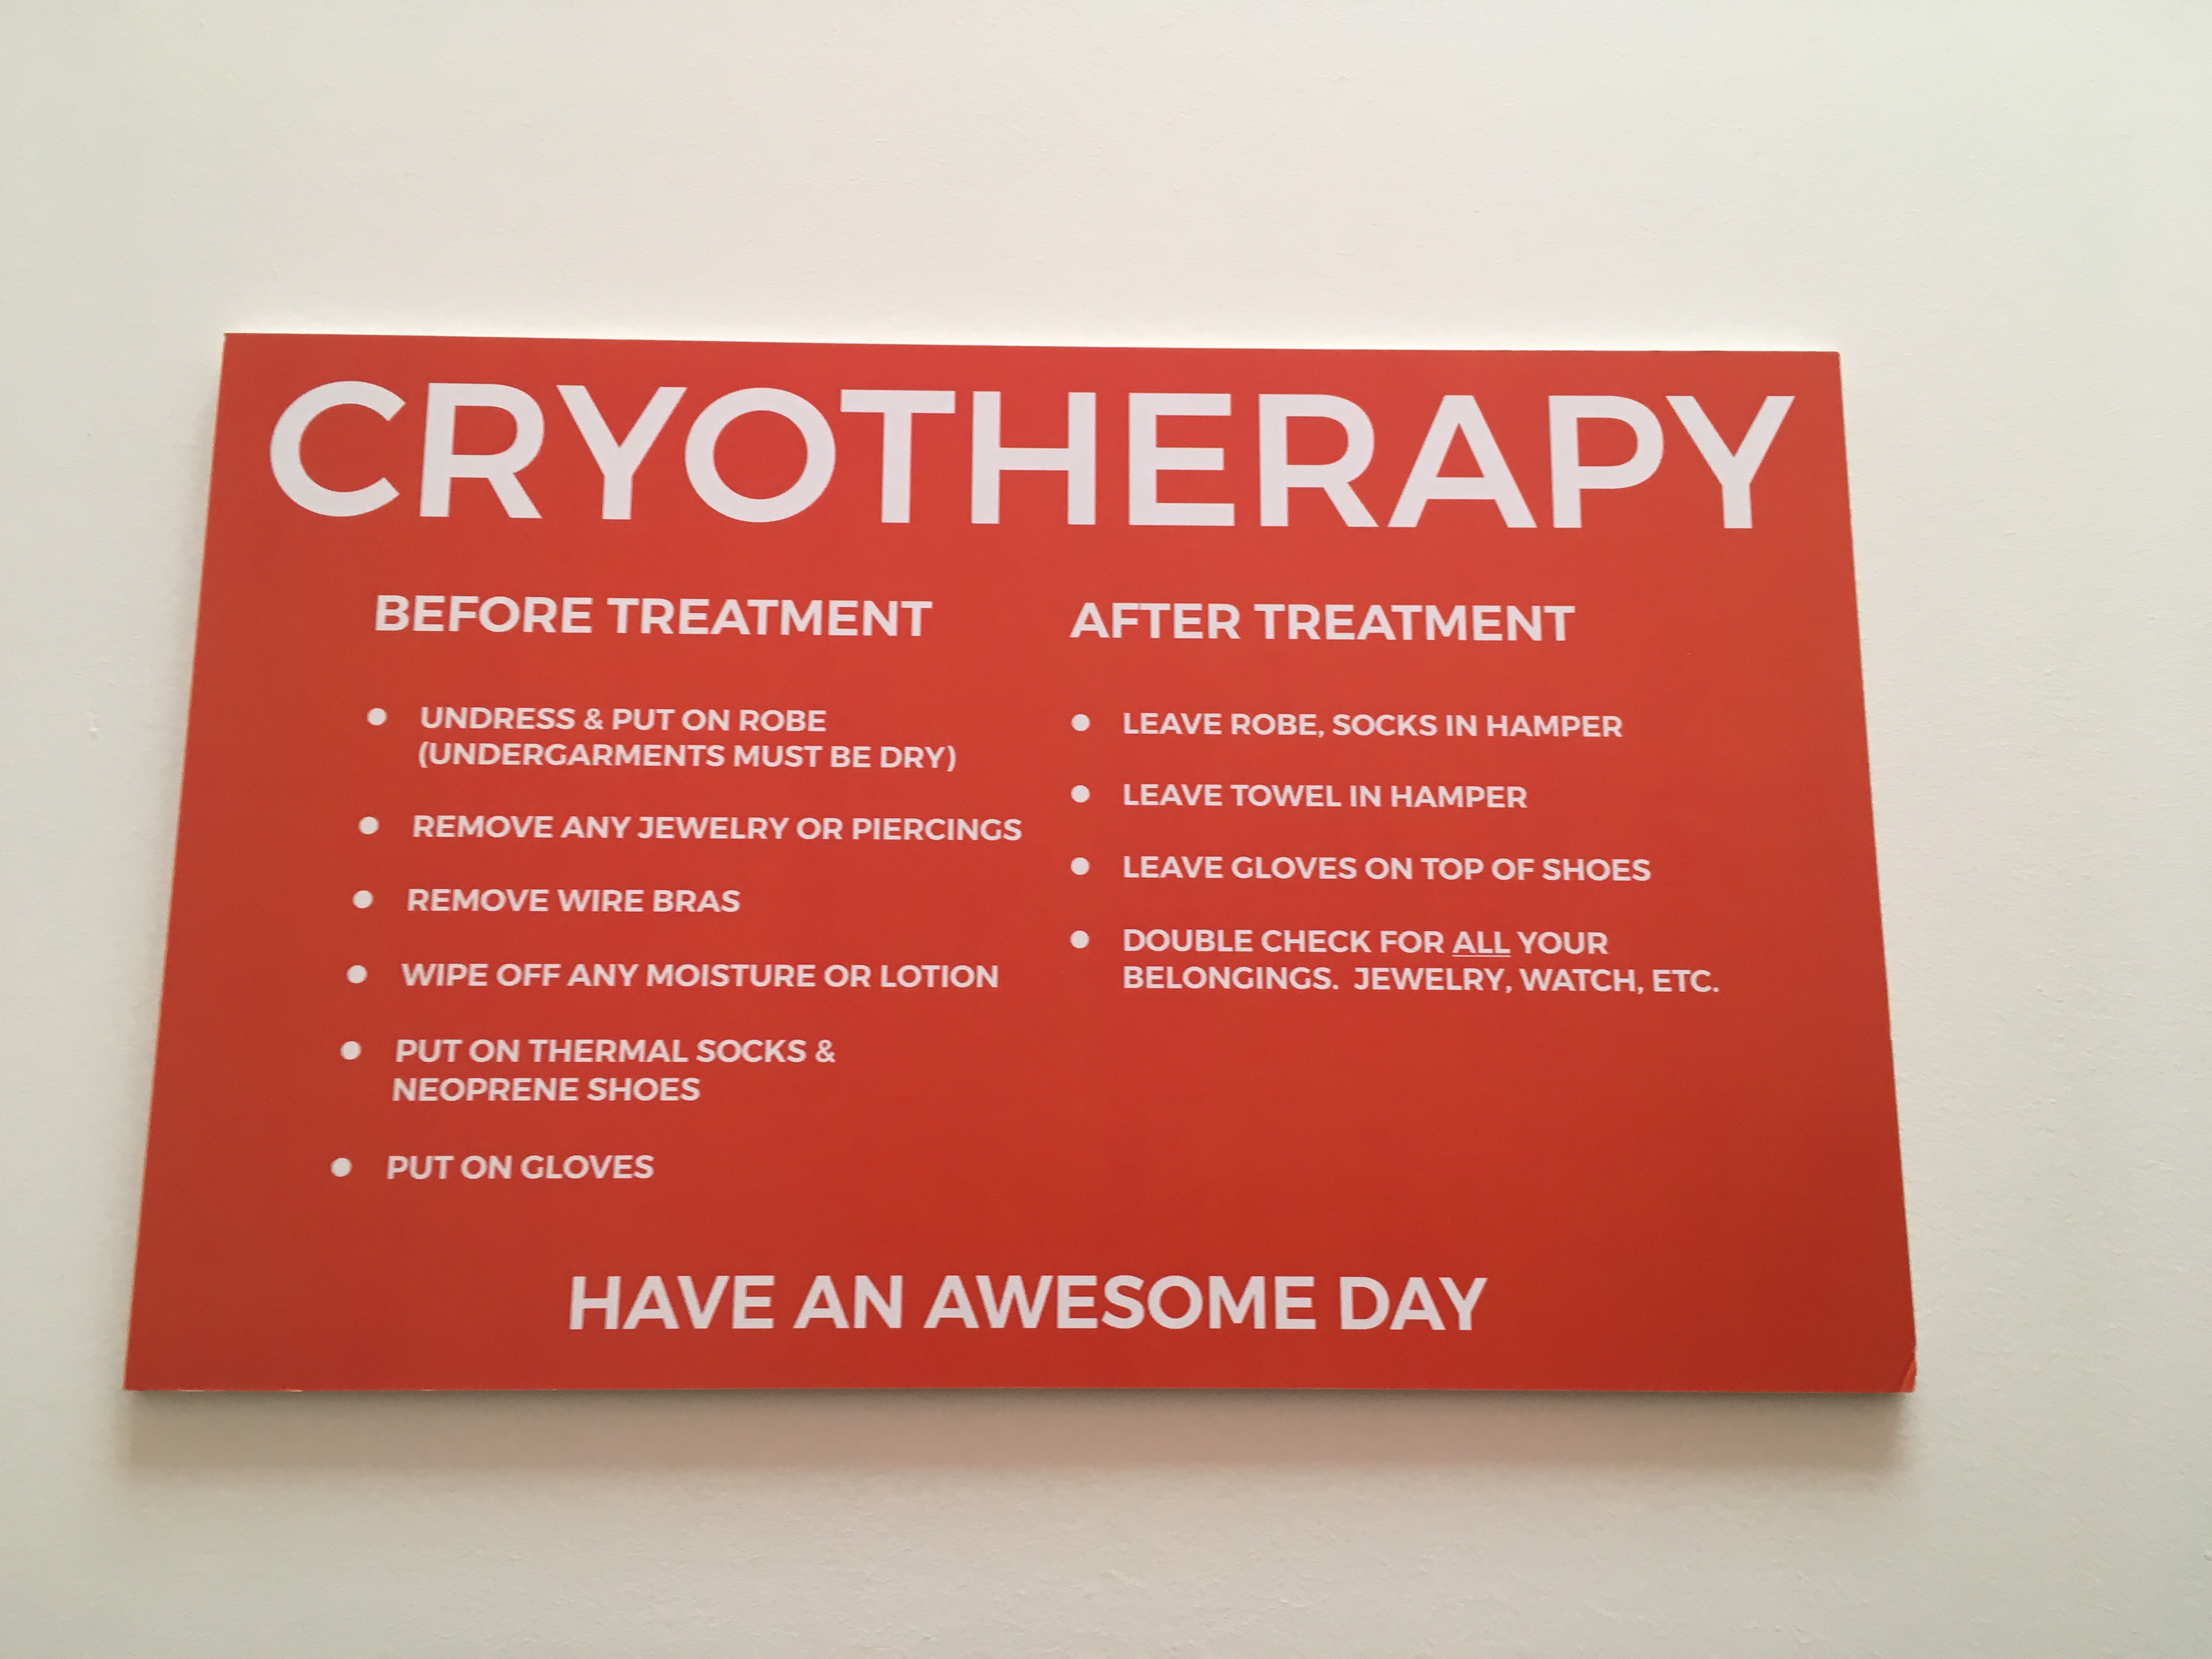 5 Reasons To Try Cryotherapy